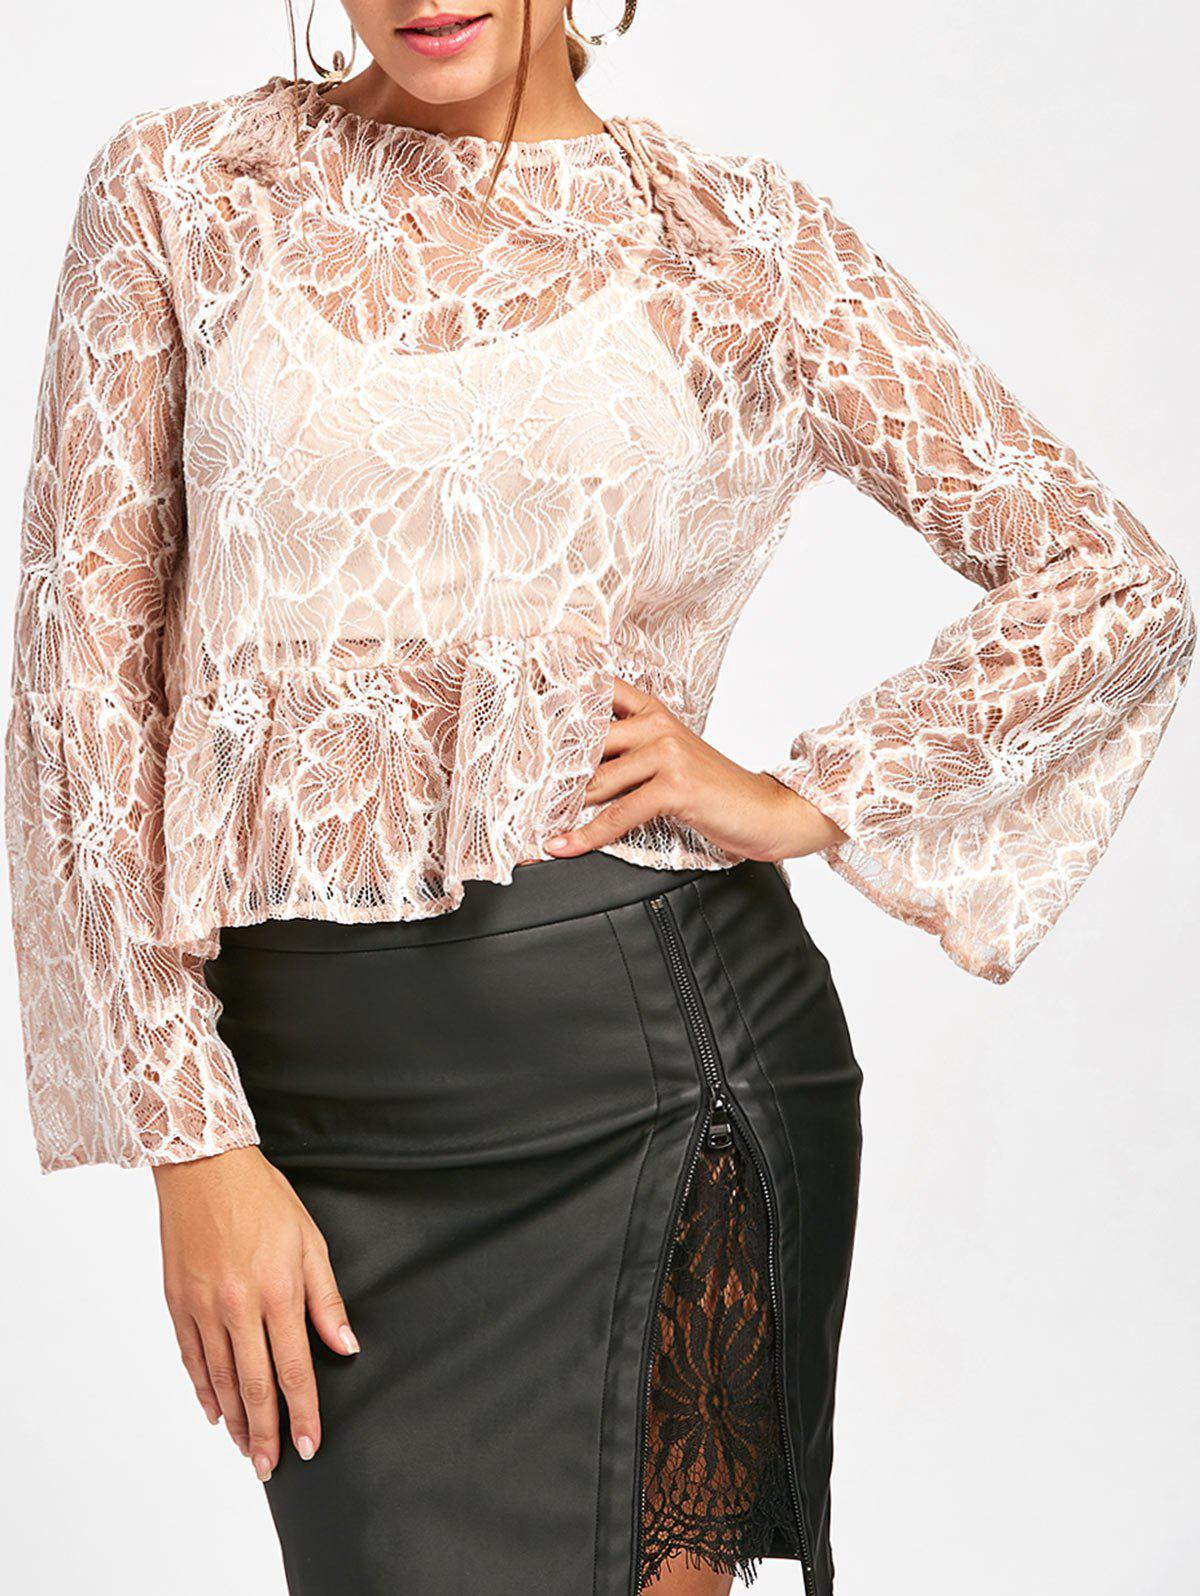 Flare Sleeve Lace Sheer Blouse - NUDE S